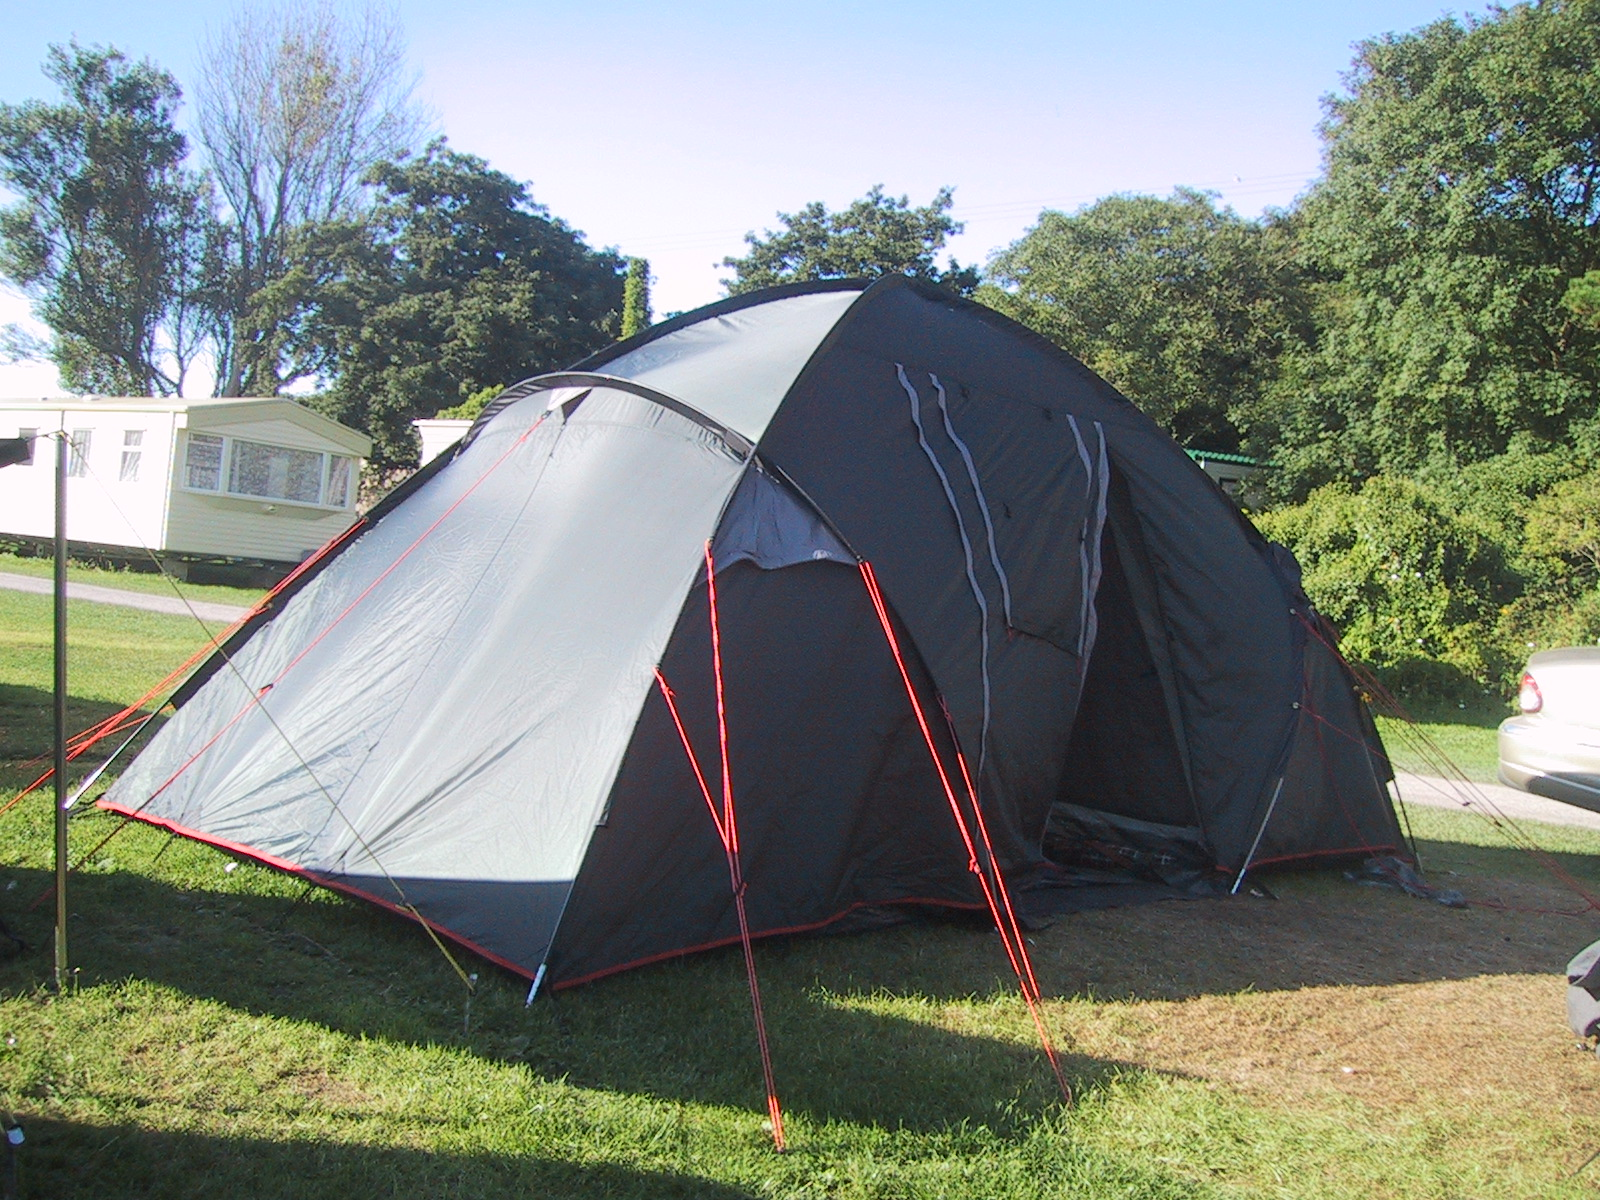 File:Dome tent.JPG  Wikipedia, the free encyclopedia